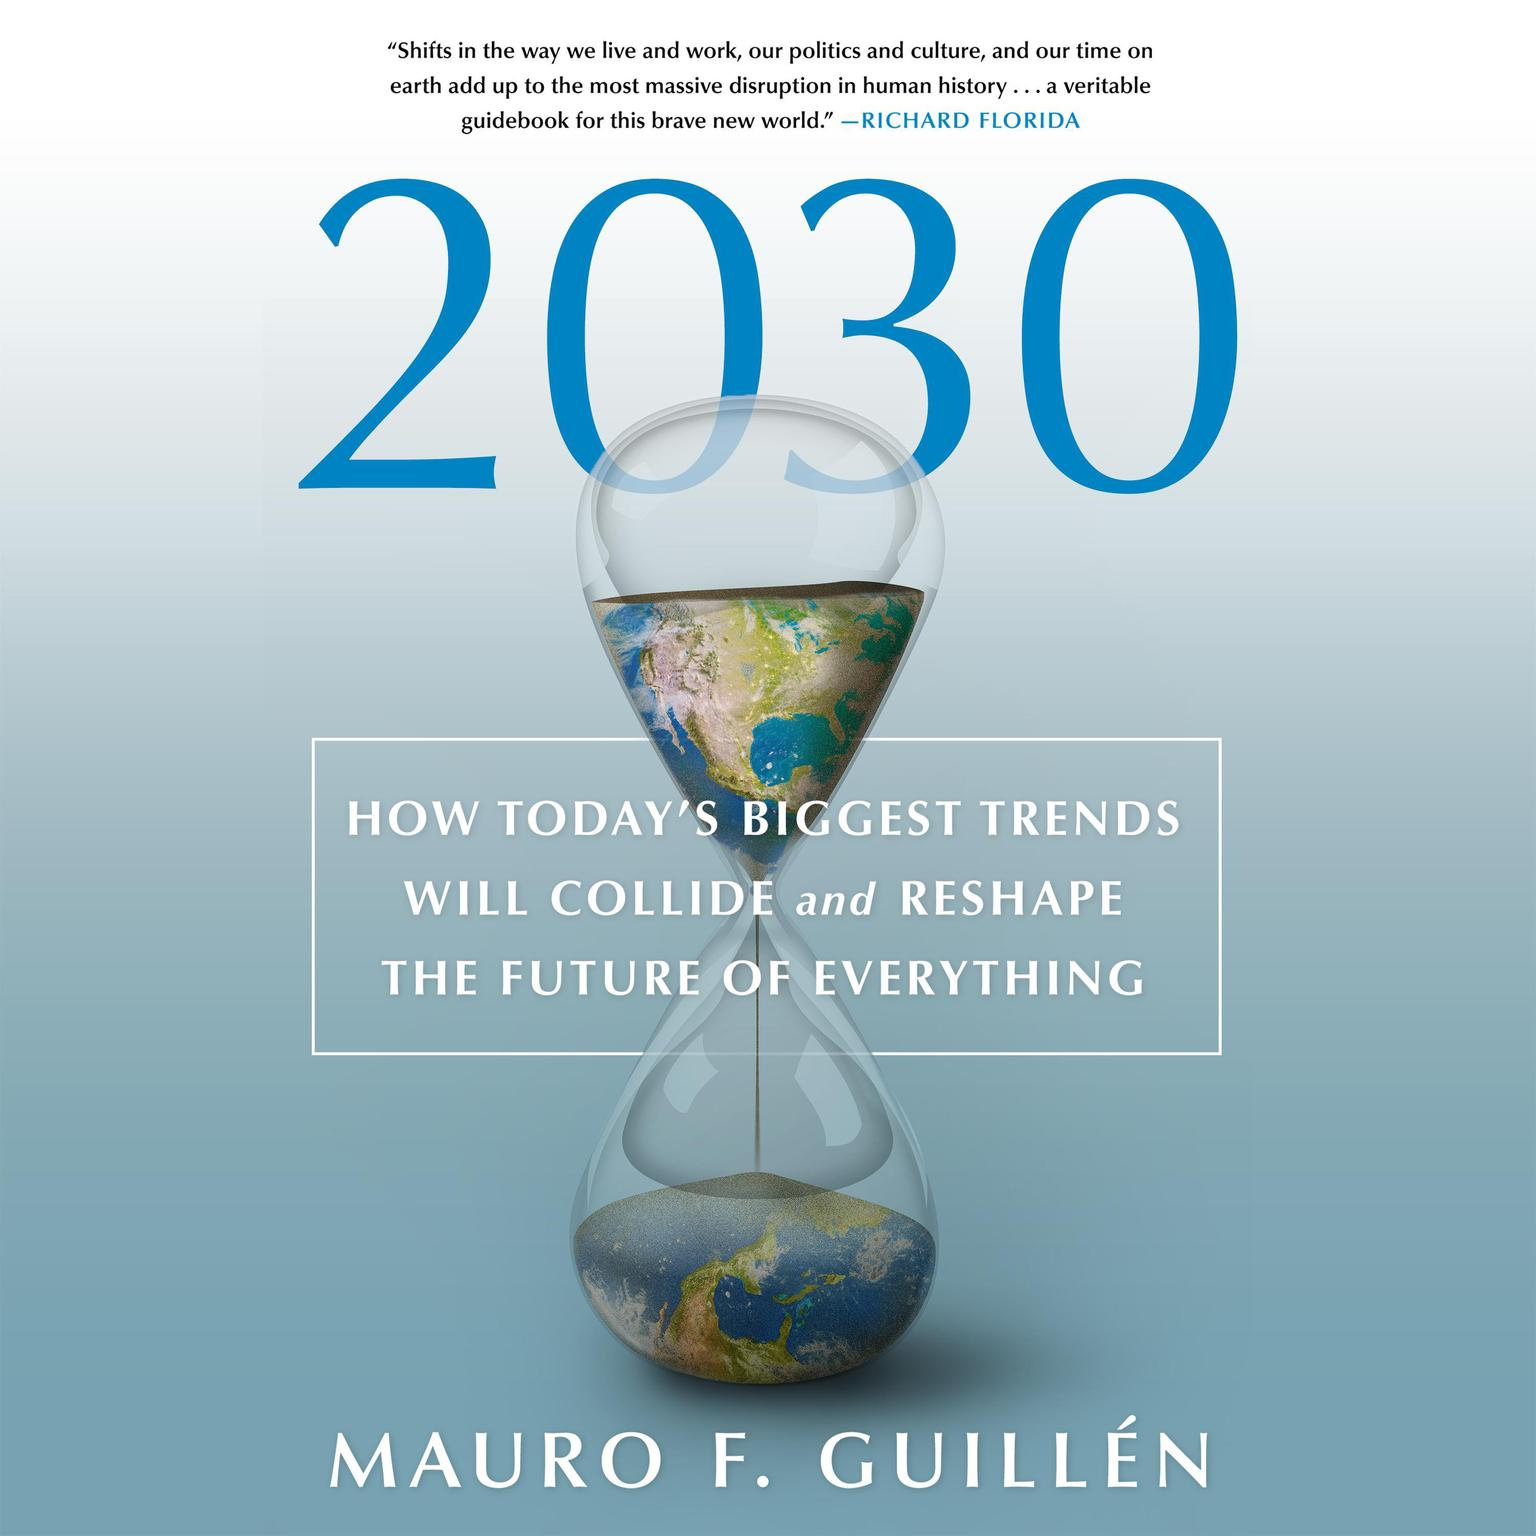 2030: How Todays Biggest Trends Will Collide and Reshape the Future of Everything: How Todays Biggest Trends Will Collide and Reshape the Future of Everything Audiobook, by Mauro F. Guillén